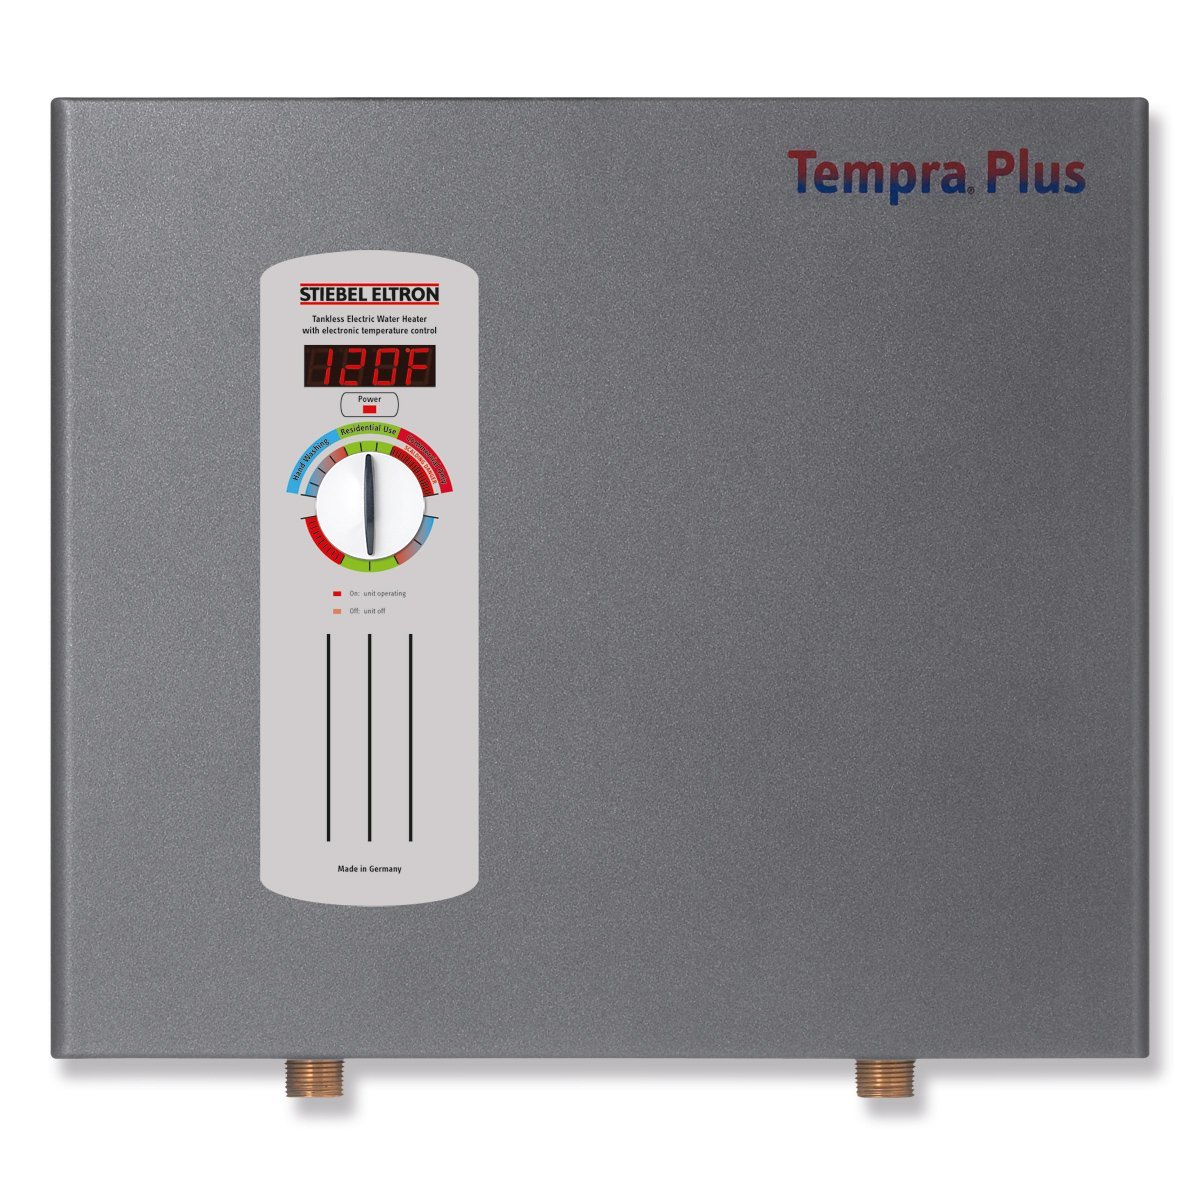 Stiebel Eltron Tempra Plus 36 kW, tankless electric water heater with Self-Modulating Power Technology & Advanced Flow Control